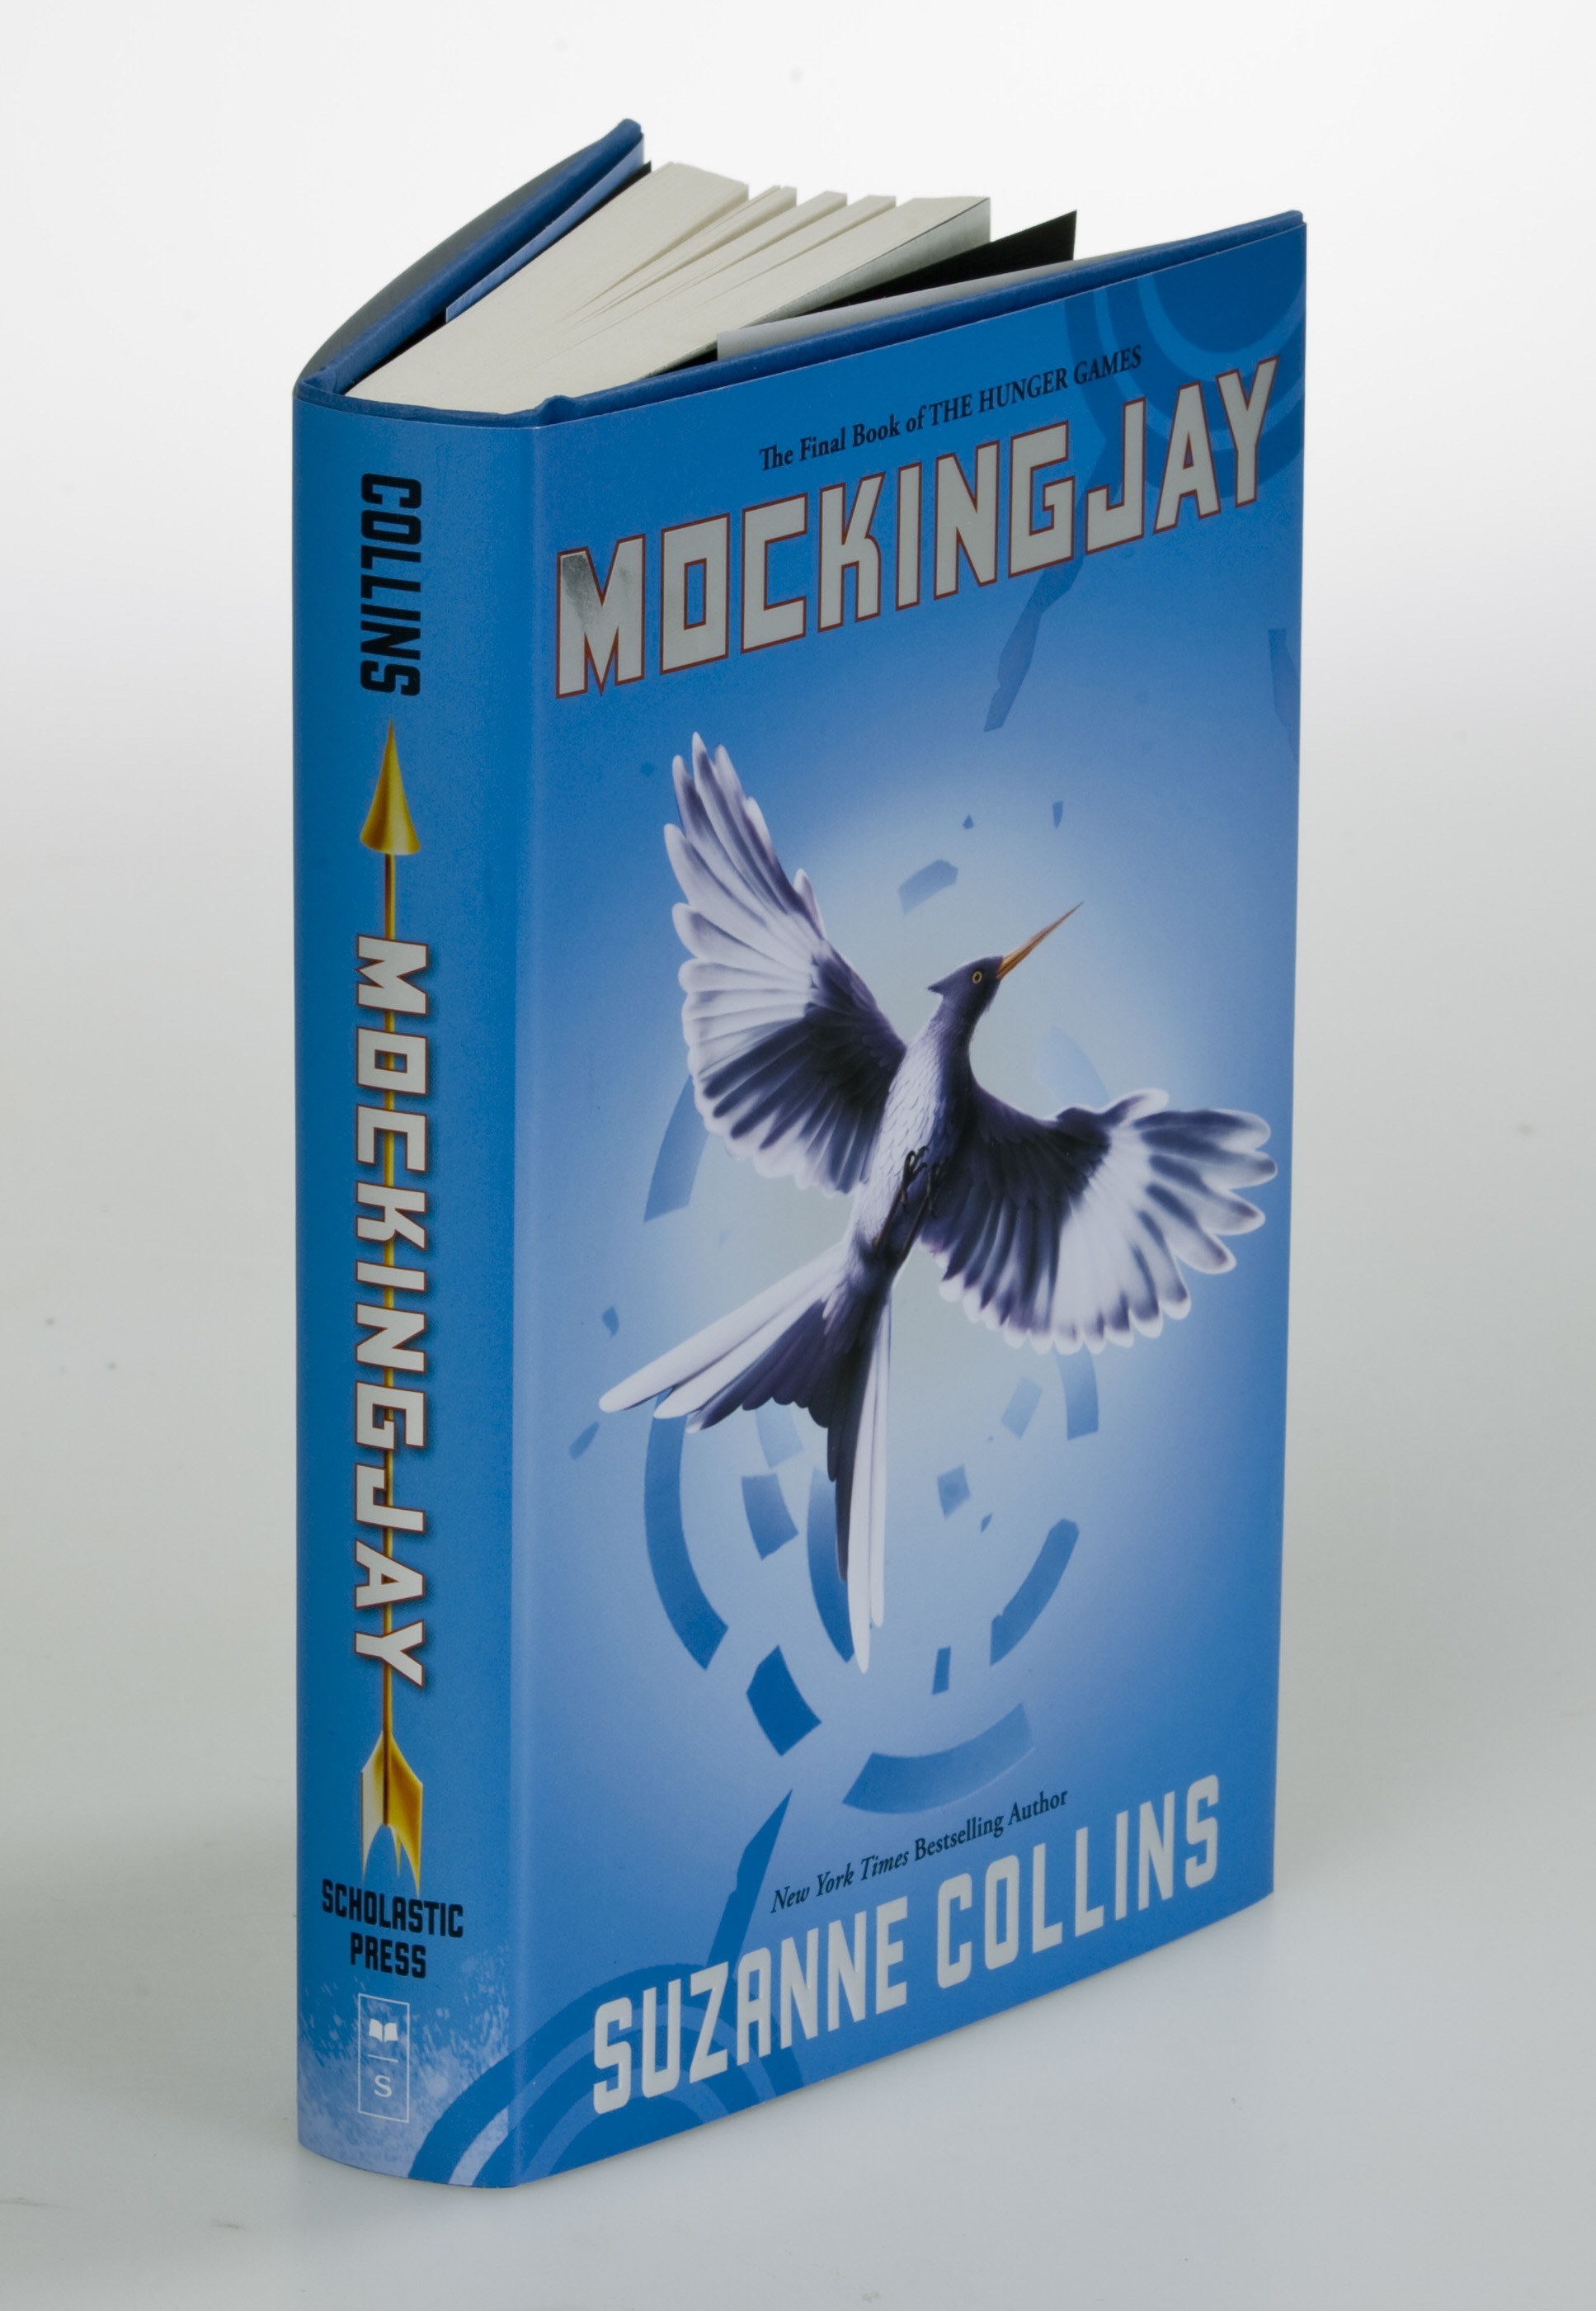 A press photo of the Mocking Jay book